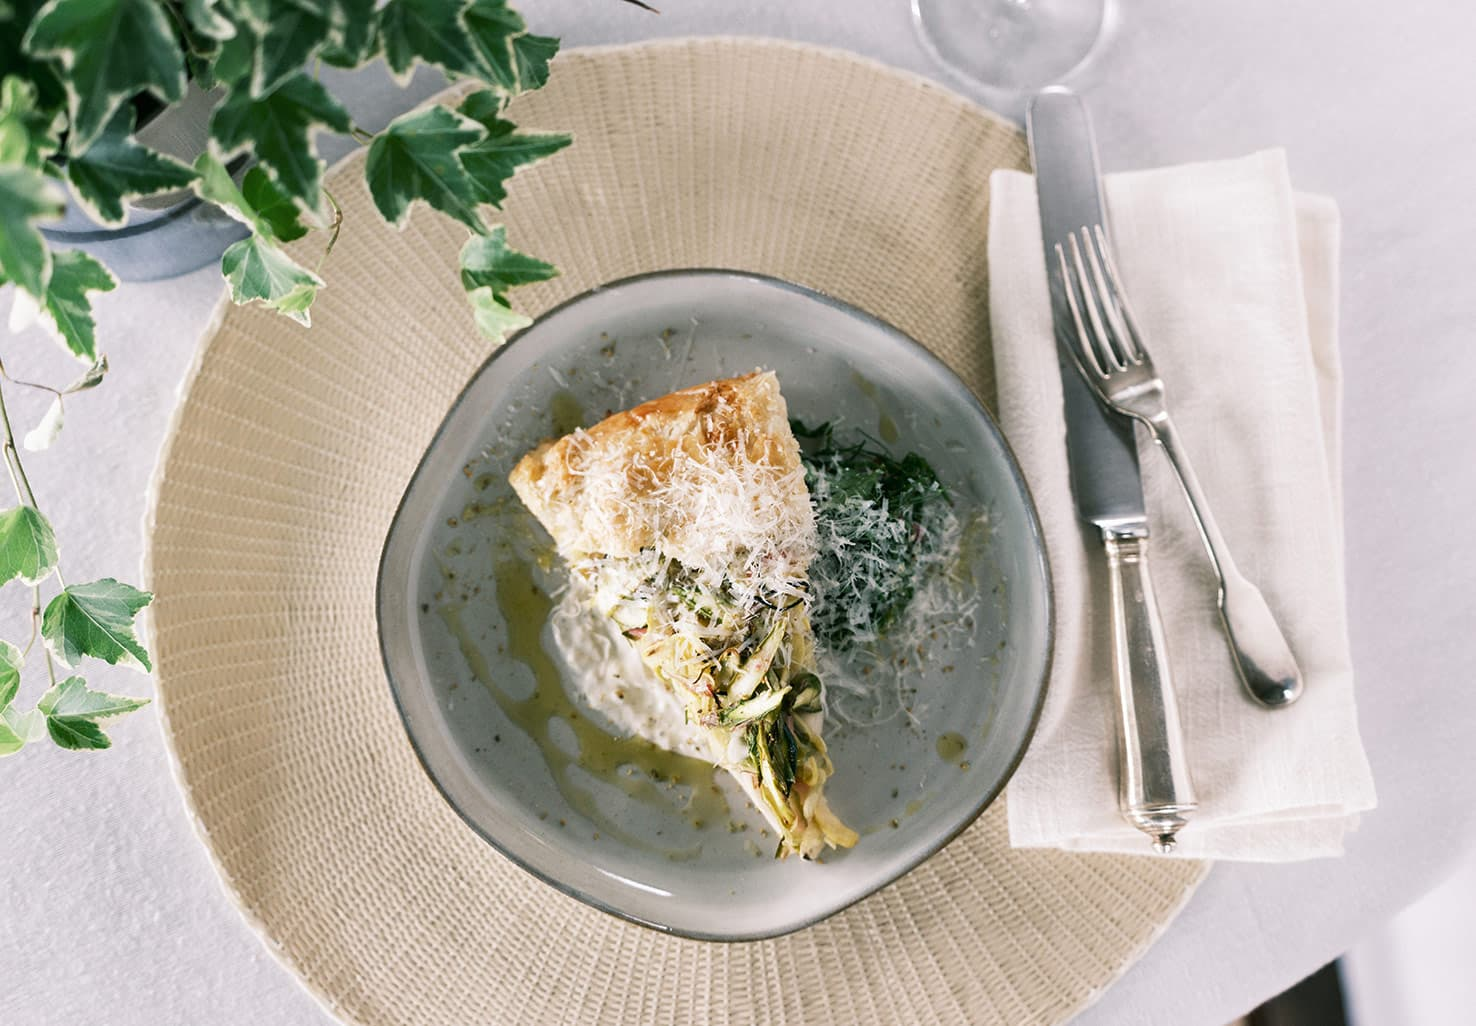 Spring Vegetable Galette with Ricotta Cream and Fresh Herb Salad at our East Tennessee resort